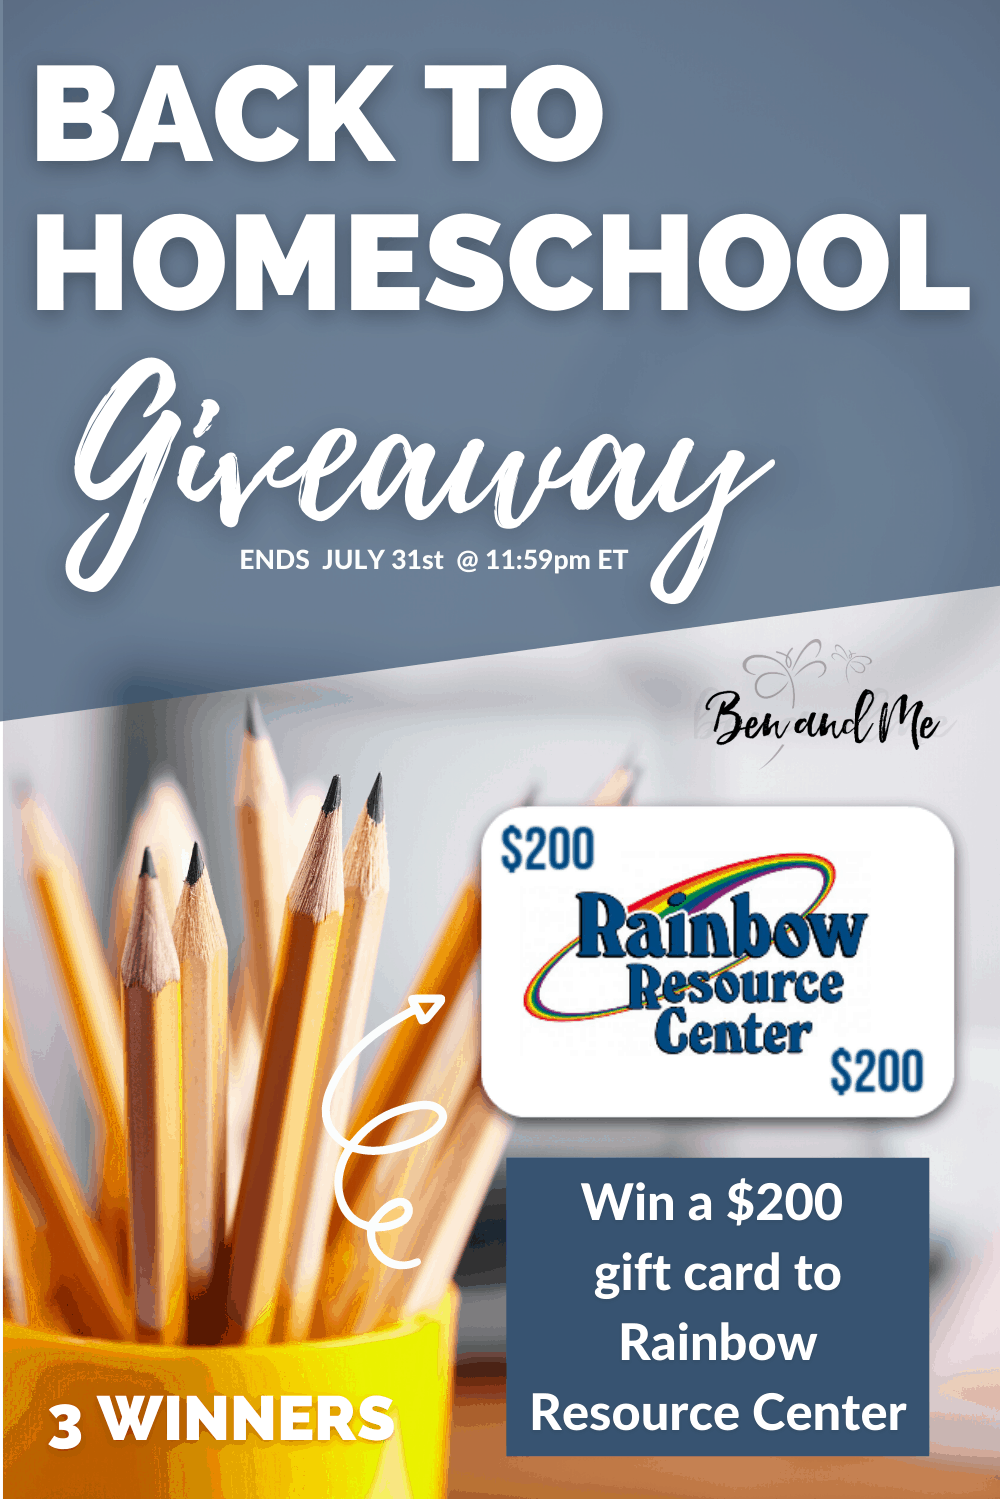 I've teamed up with a great group of homeschool bloggers that would like to help and bless a few homeschool families this year. We wish we could bless more, but we will be able to give THREE families $200 to spend at Rainbow Resource Center to buy curriculum, resources, and supplies for their homeschools. #homeschool #homeschoolgiveaways #homeschoolcurriculum